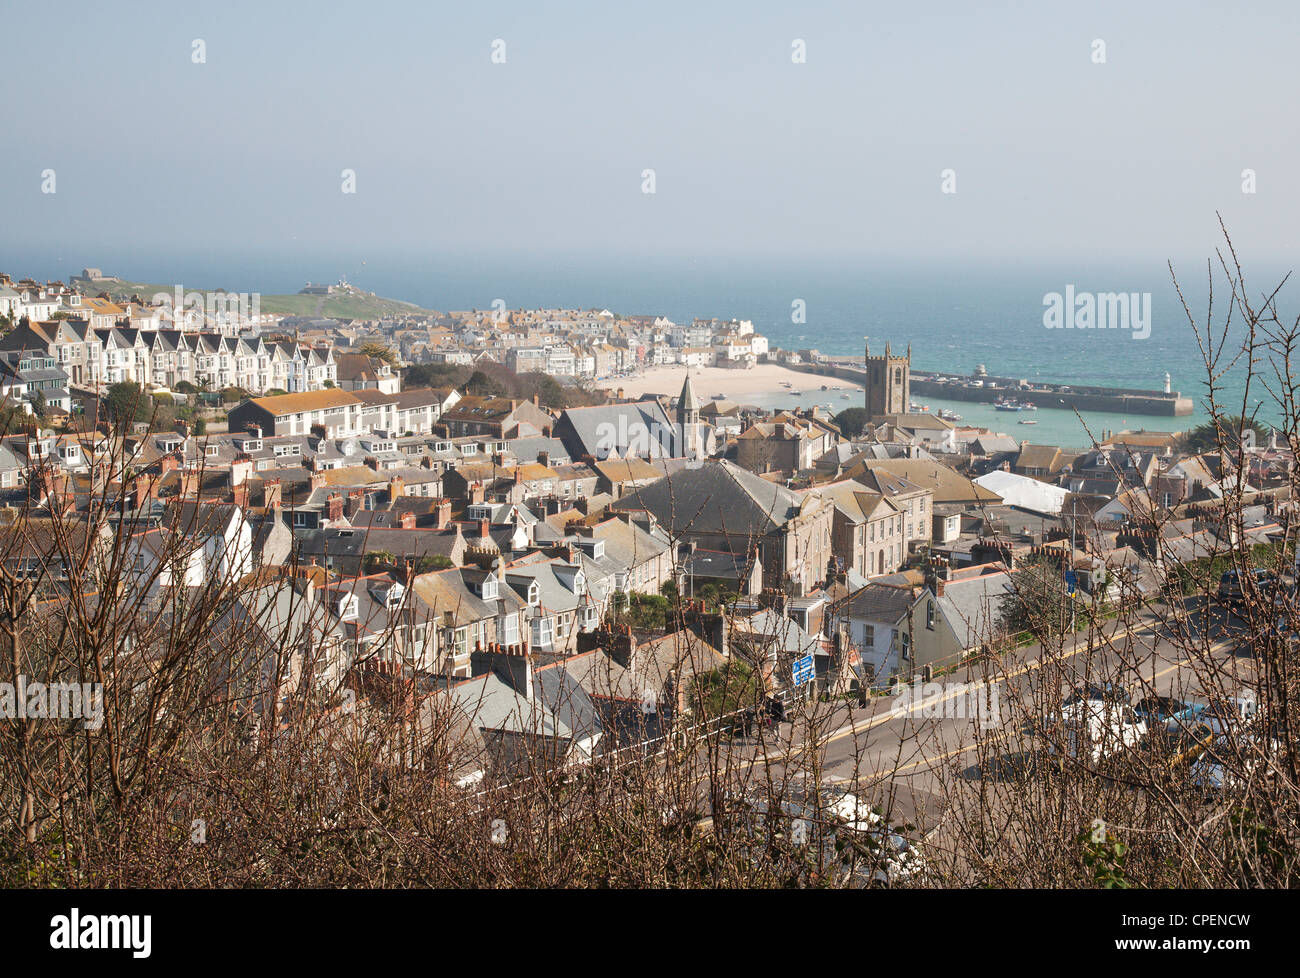 View down onto St Ives and the harbour, Cornwall, England, UK in late winter - Stock Image